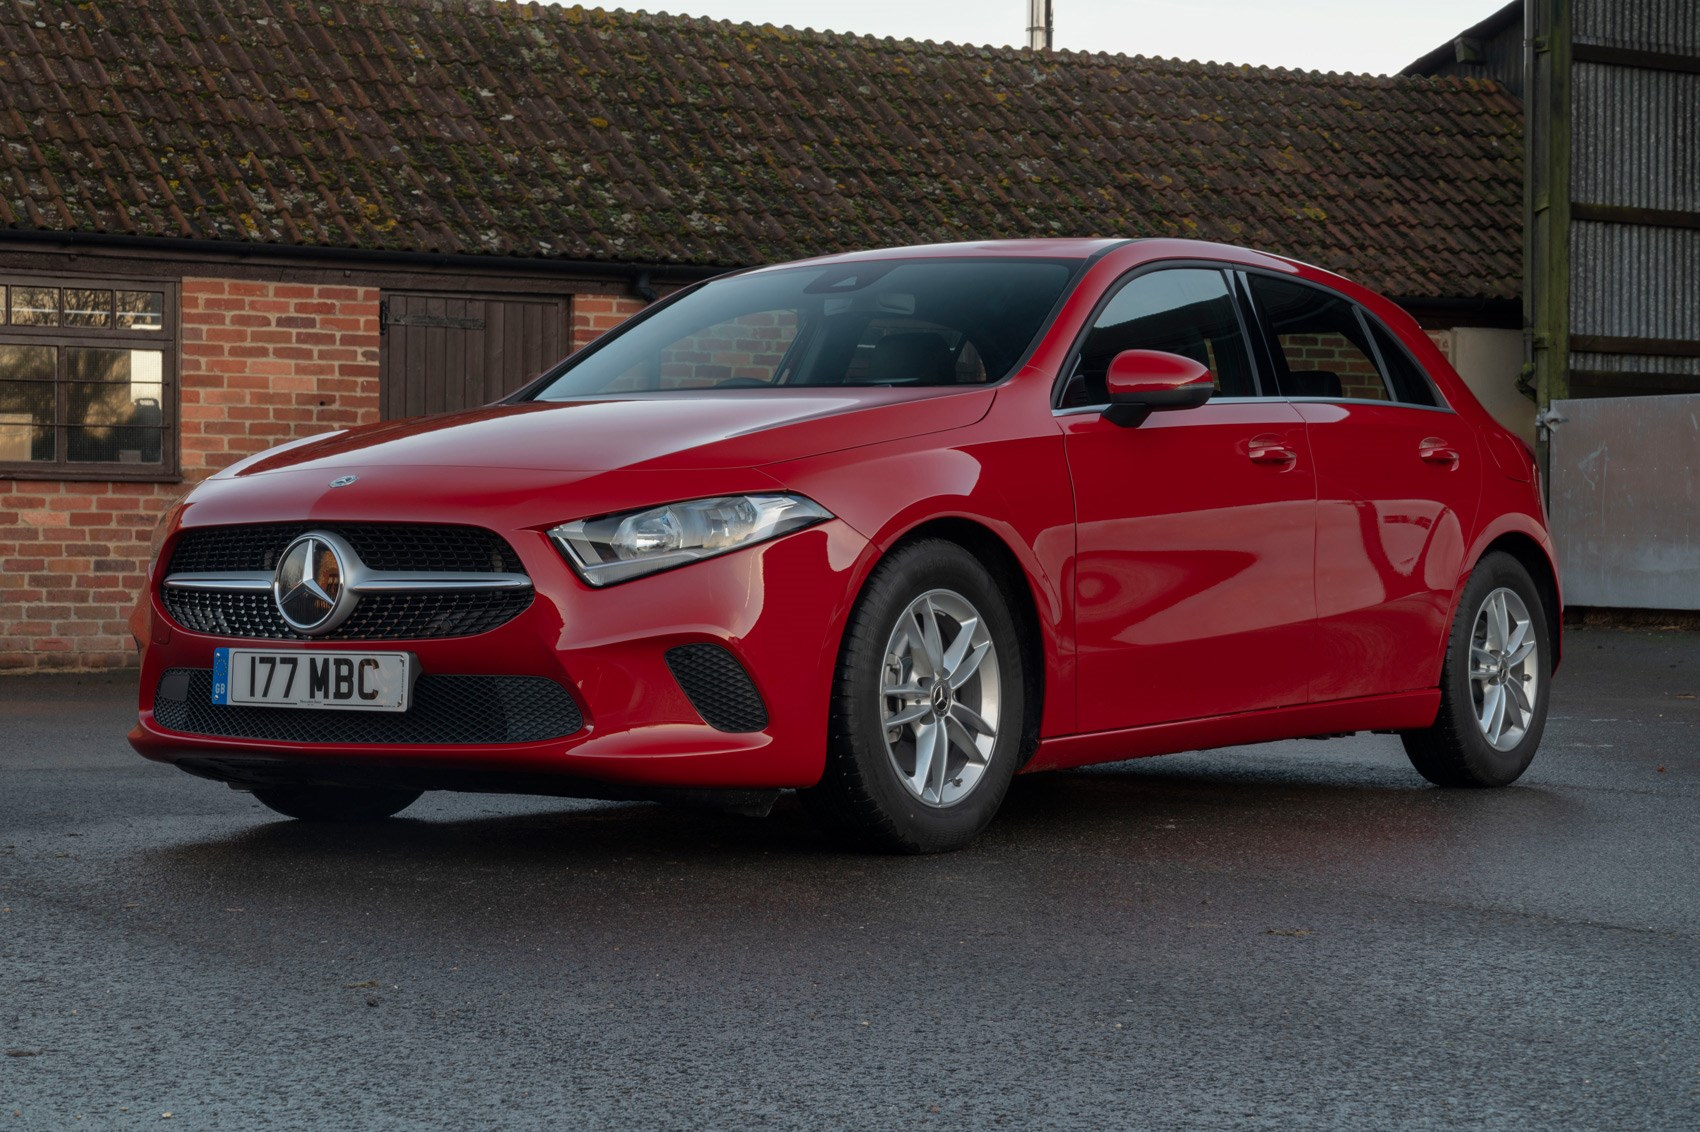 Mercedes A-class review: every powertrain driven on UK roads | CAR